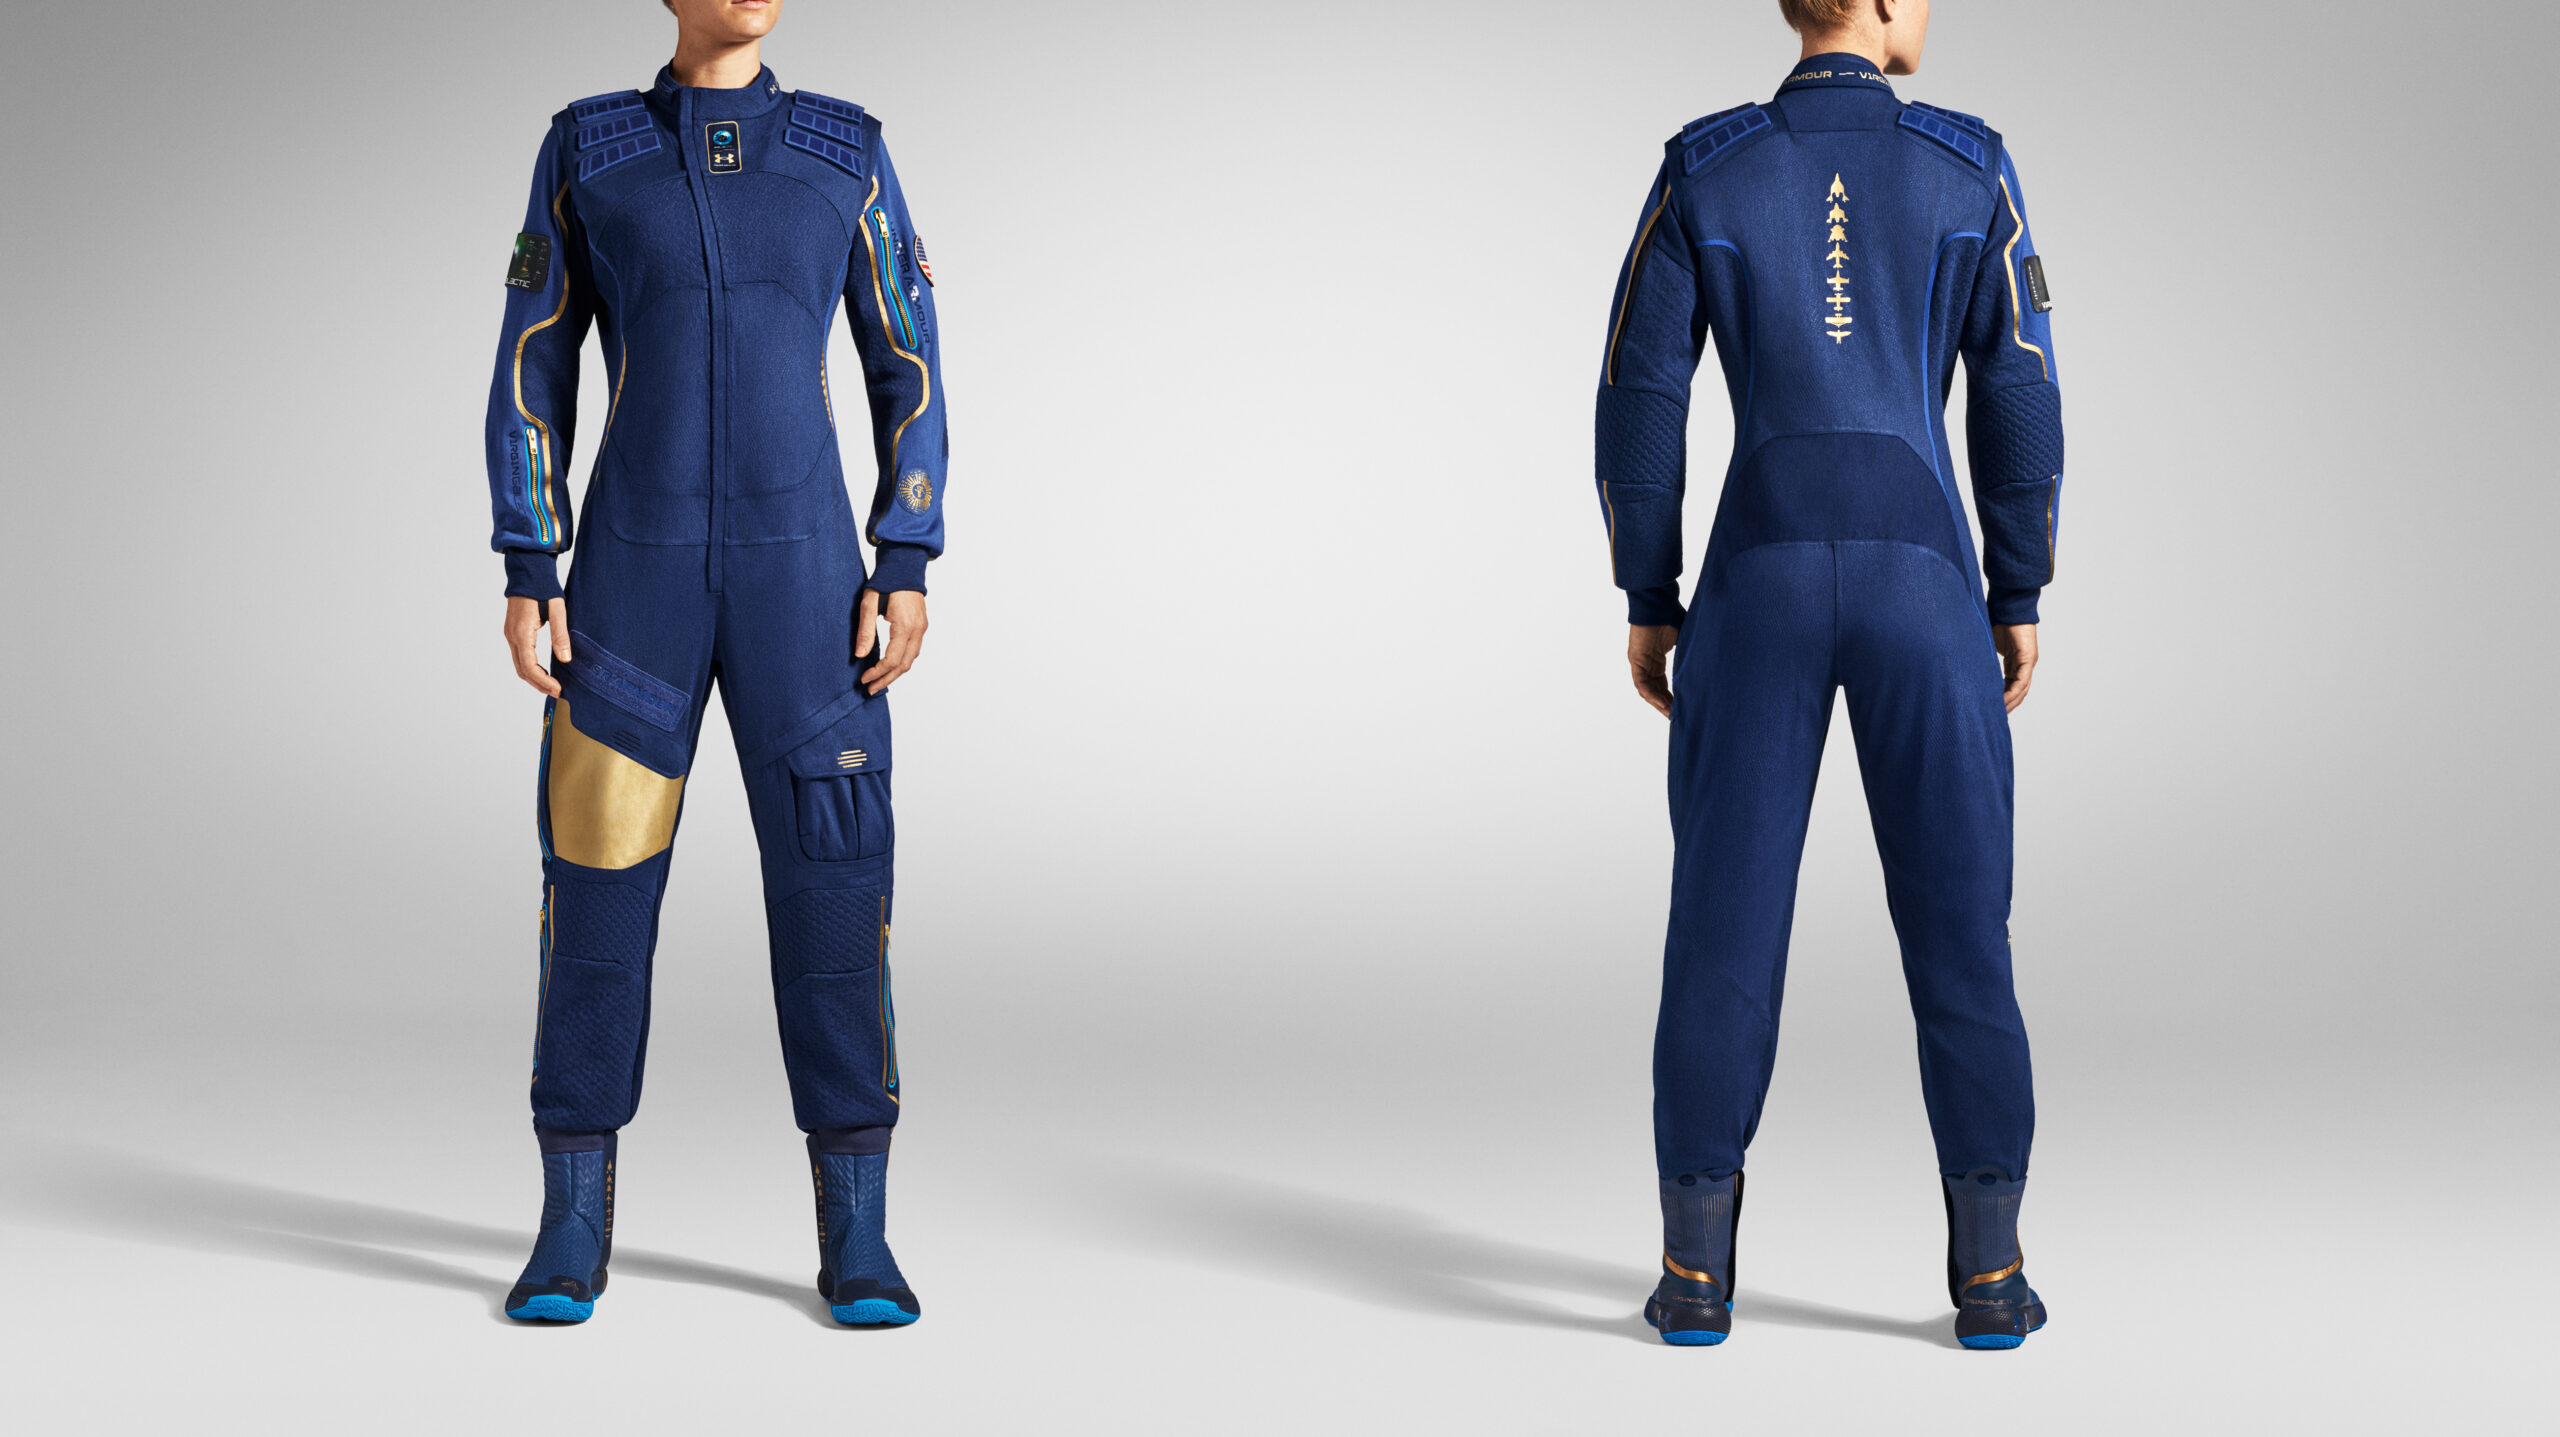 Under Armour spacesuits for Virgin Galactic